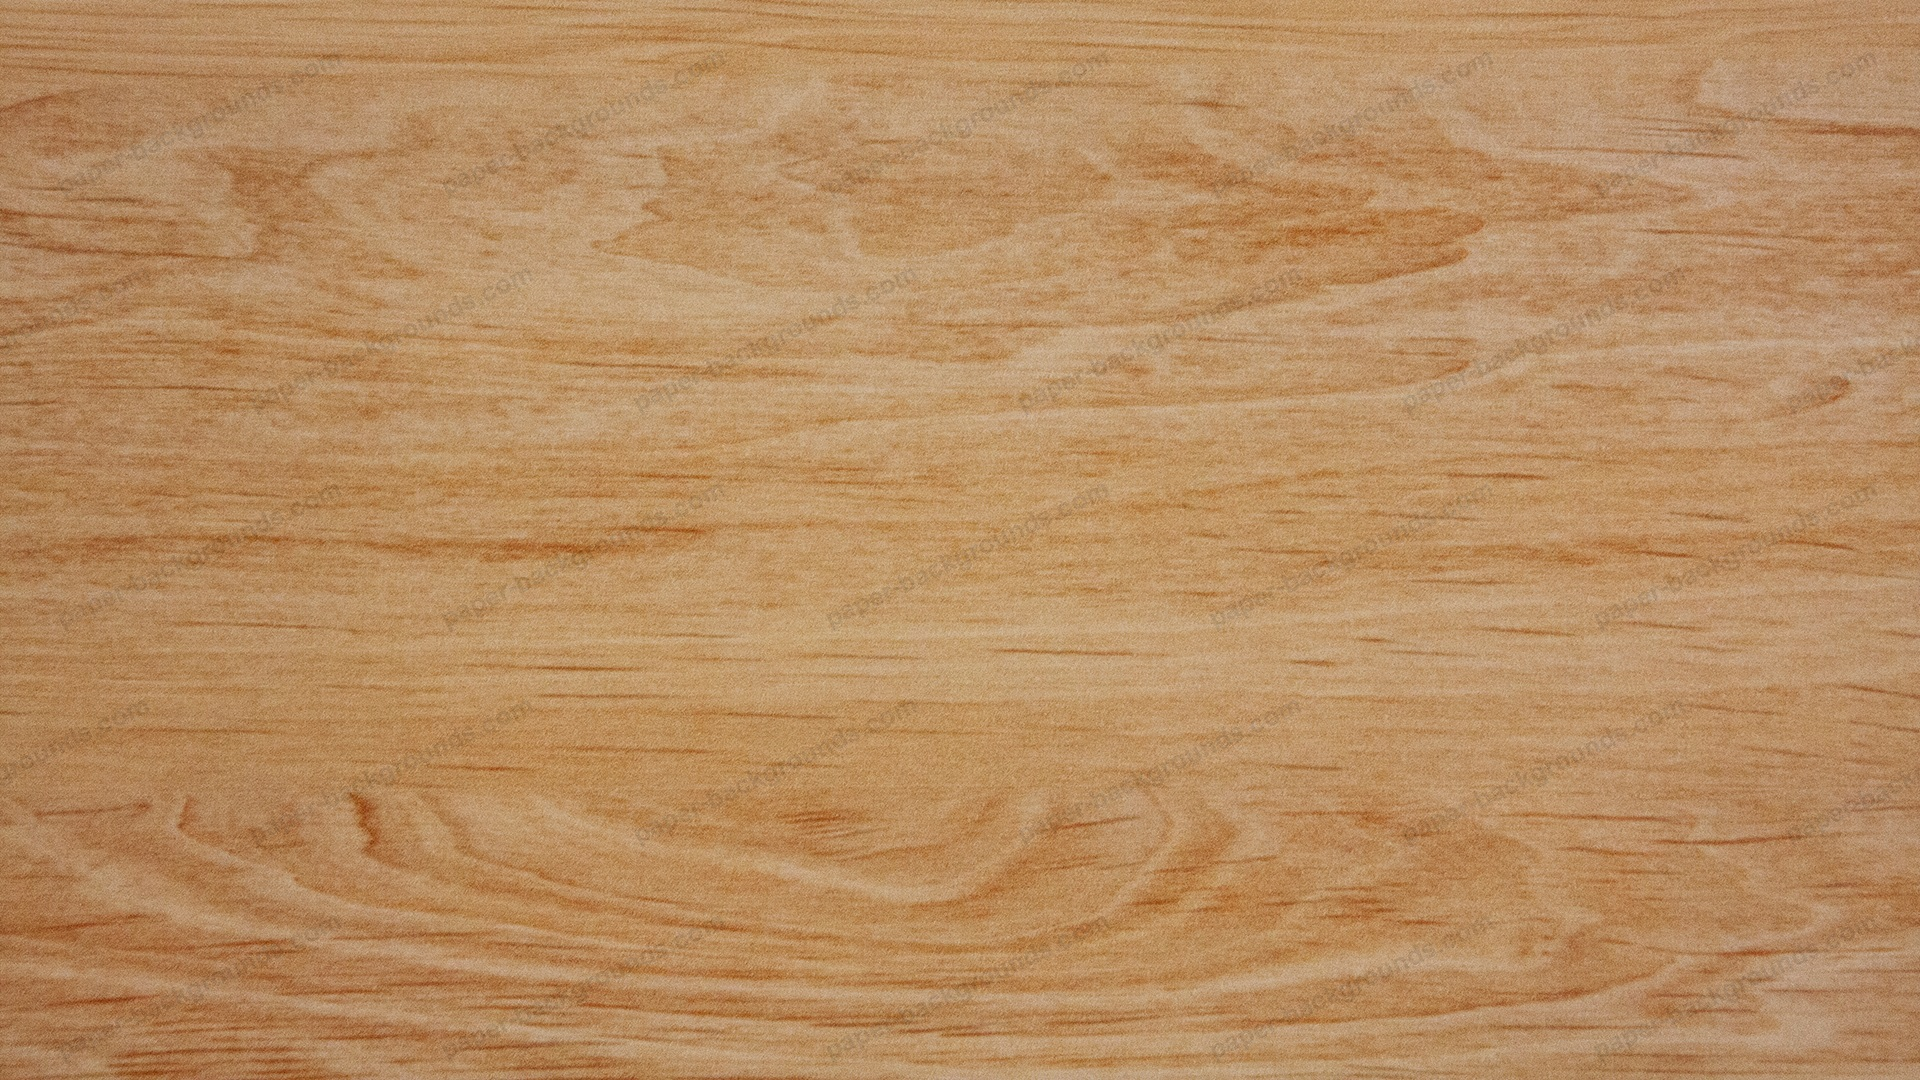 wooden texture background hd 7 | Background Check All